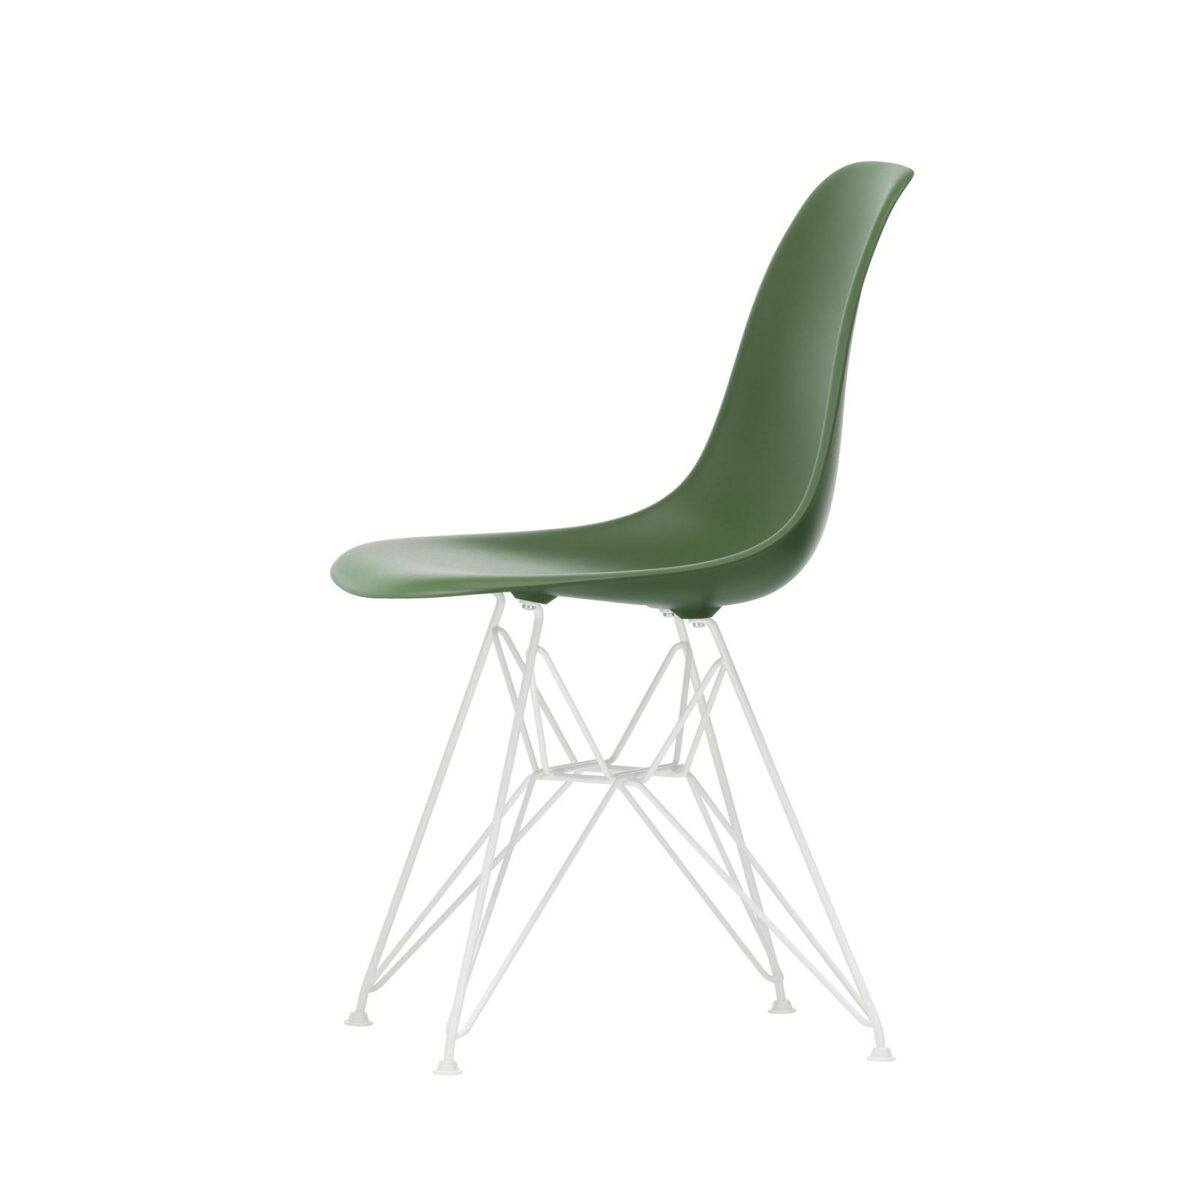 3034976 Eames Plastic Side Chair DSR 48 forest 04 white powder coated left master